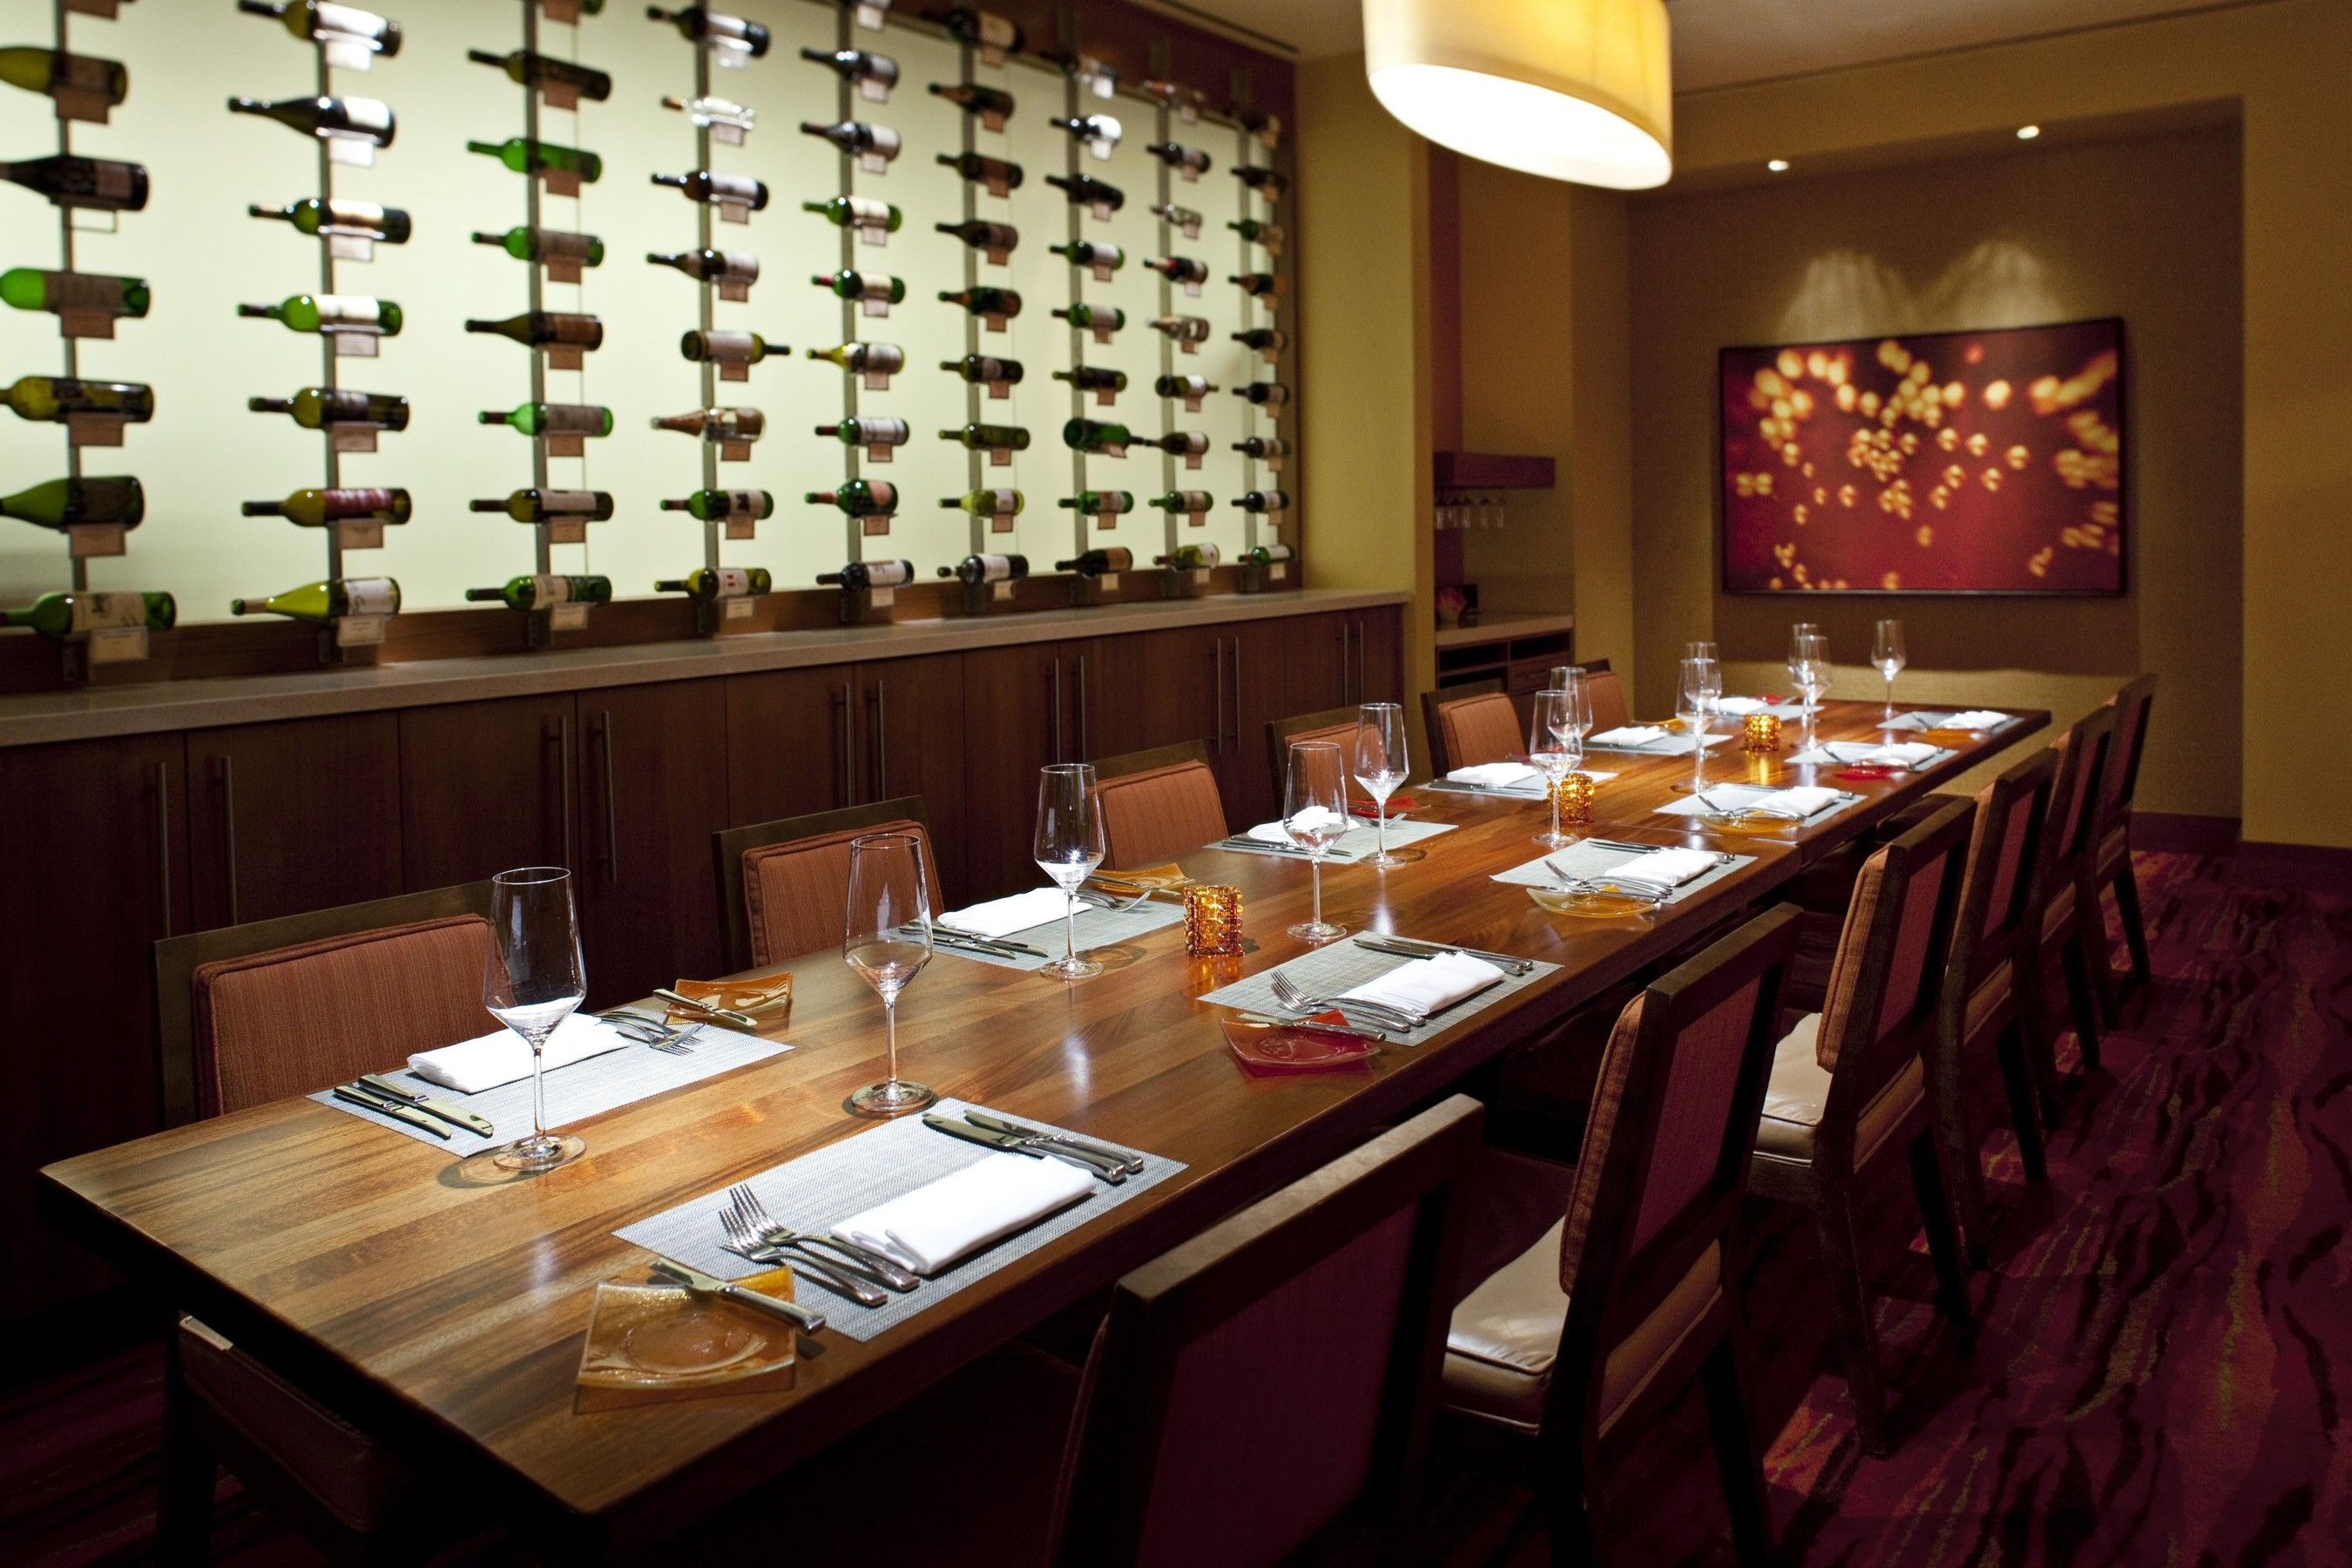 private restaurant dining rooms images - Bing Images | STYLE ...